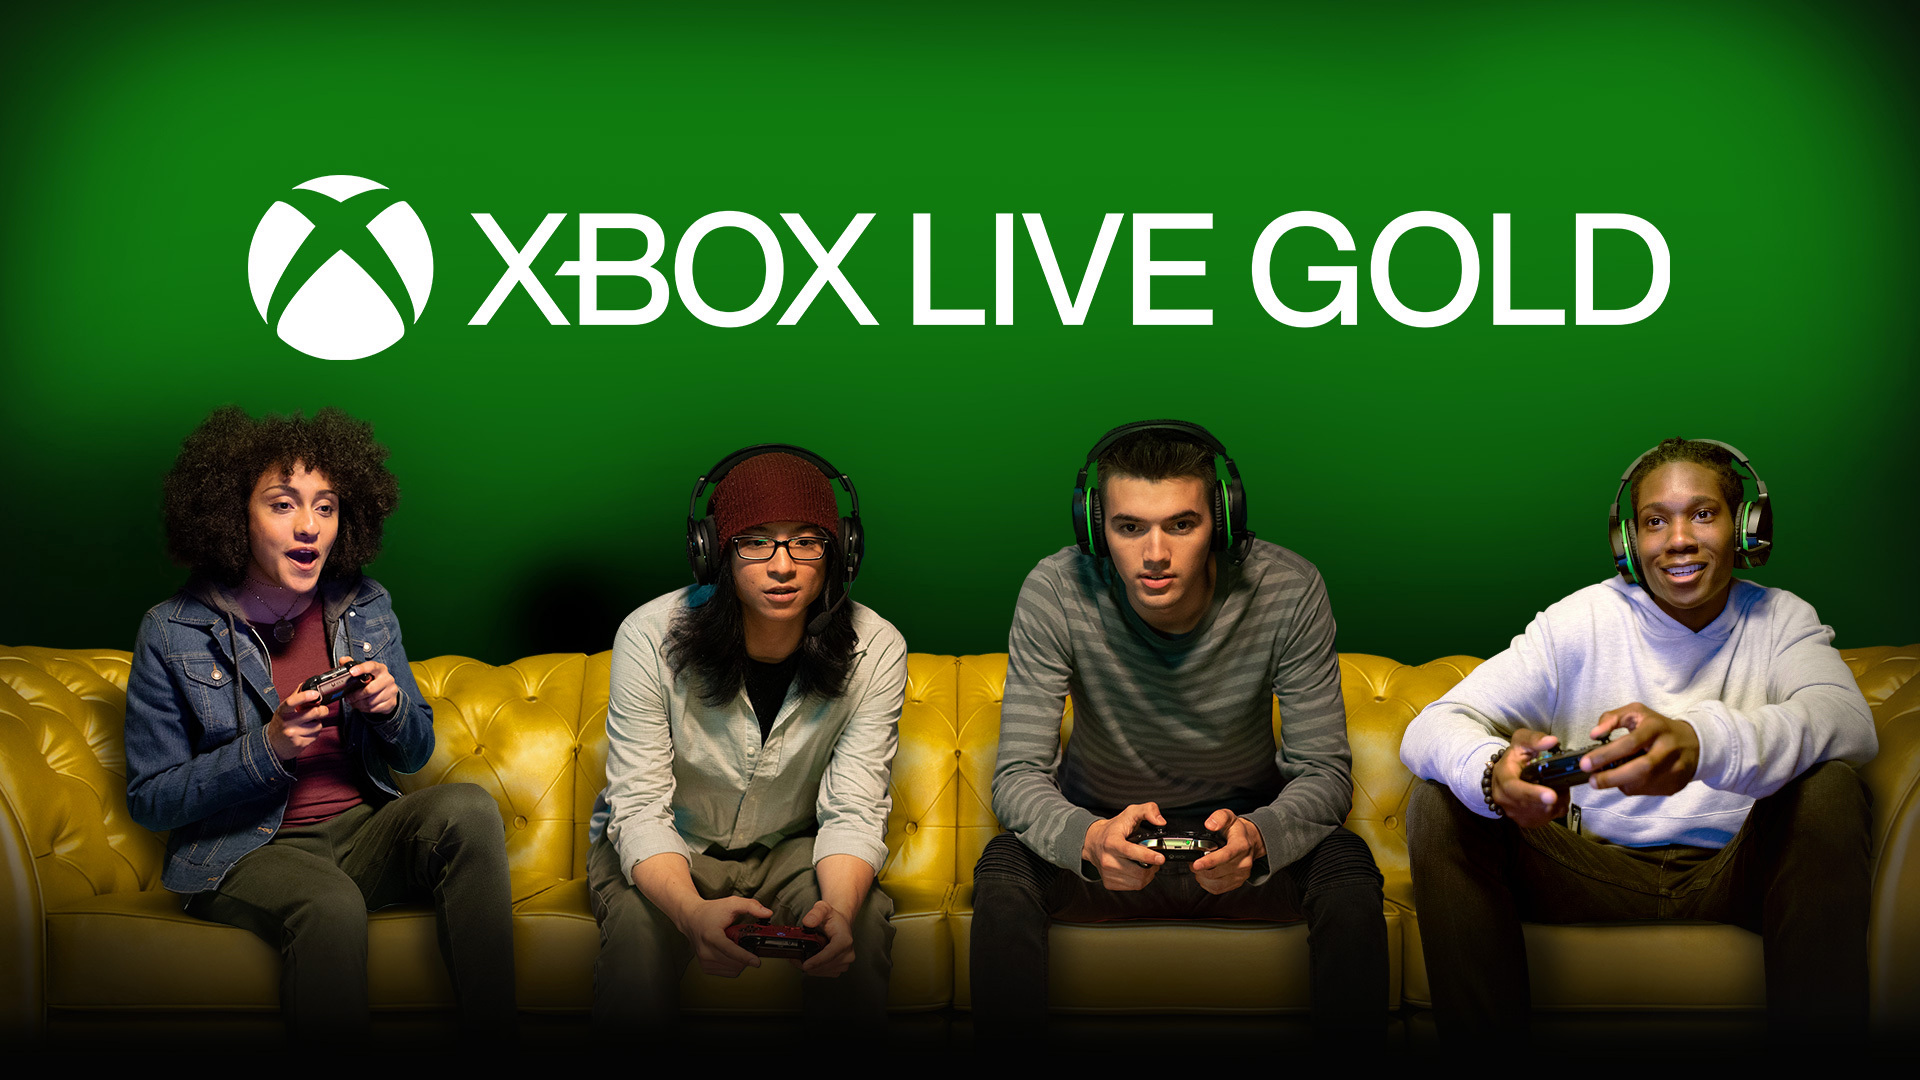 Microsoft cancels its Xbox Live GOLD price hike on same day it announced it